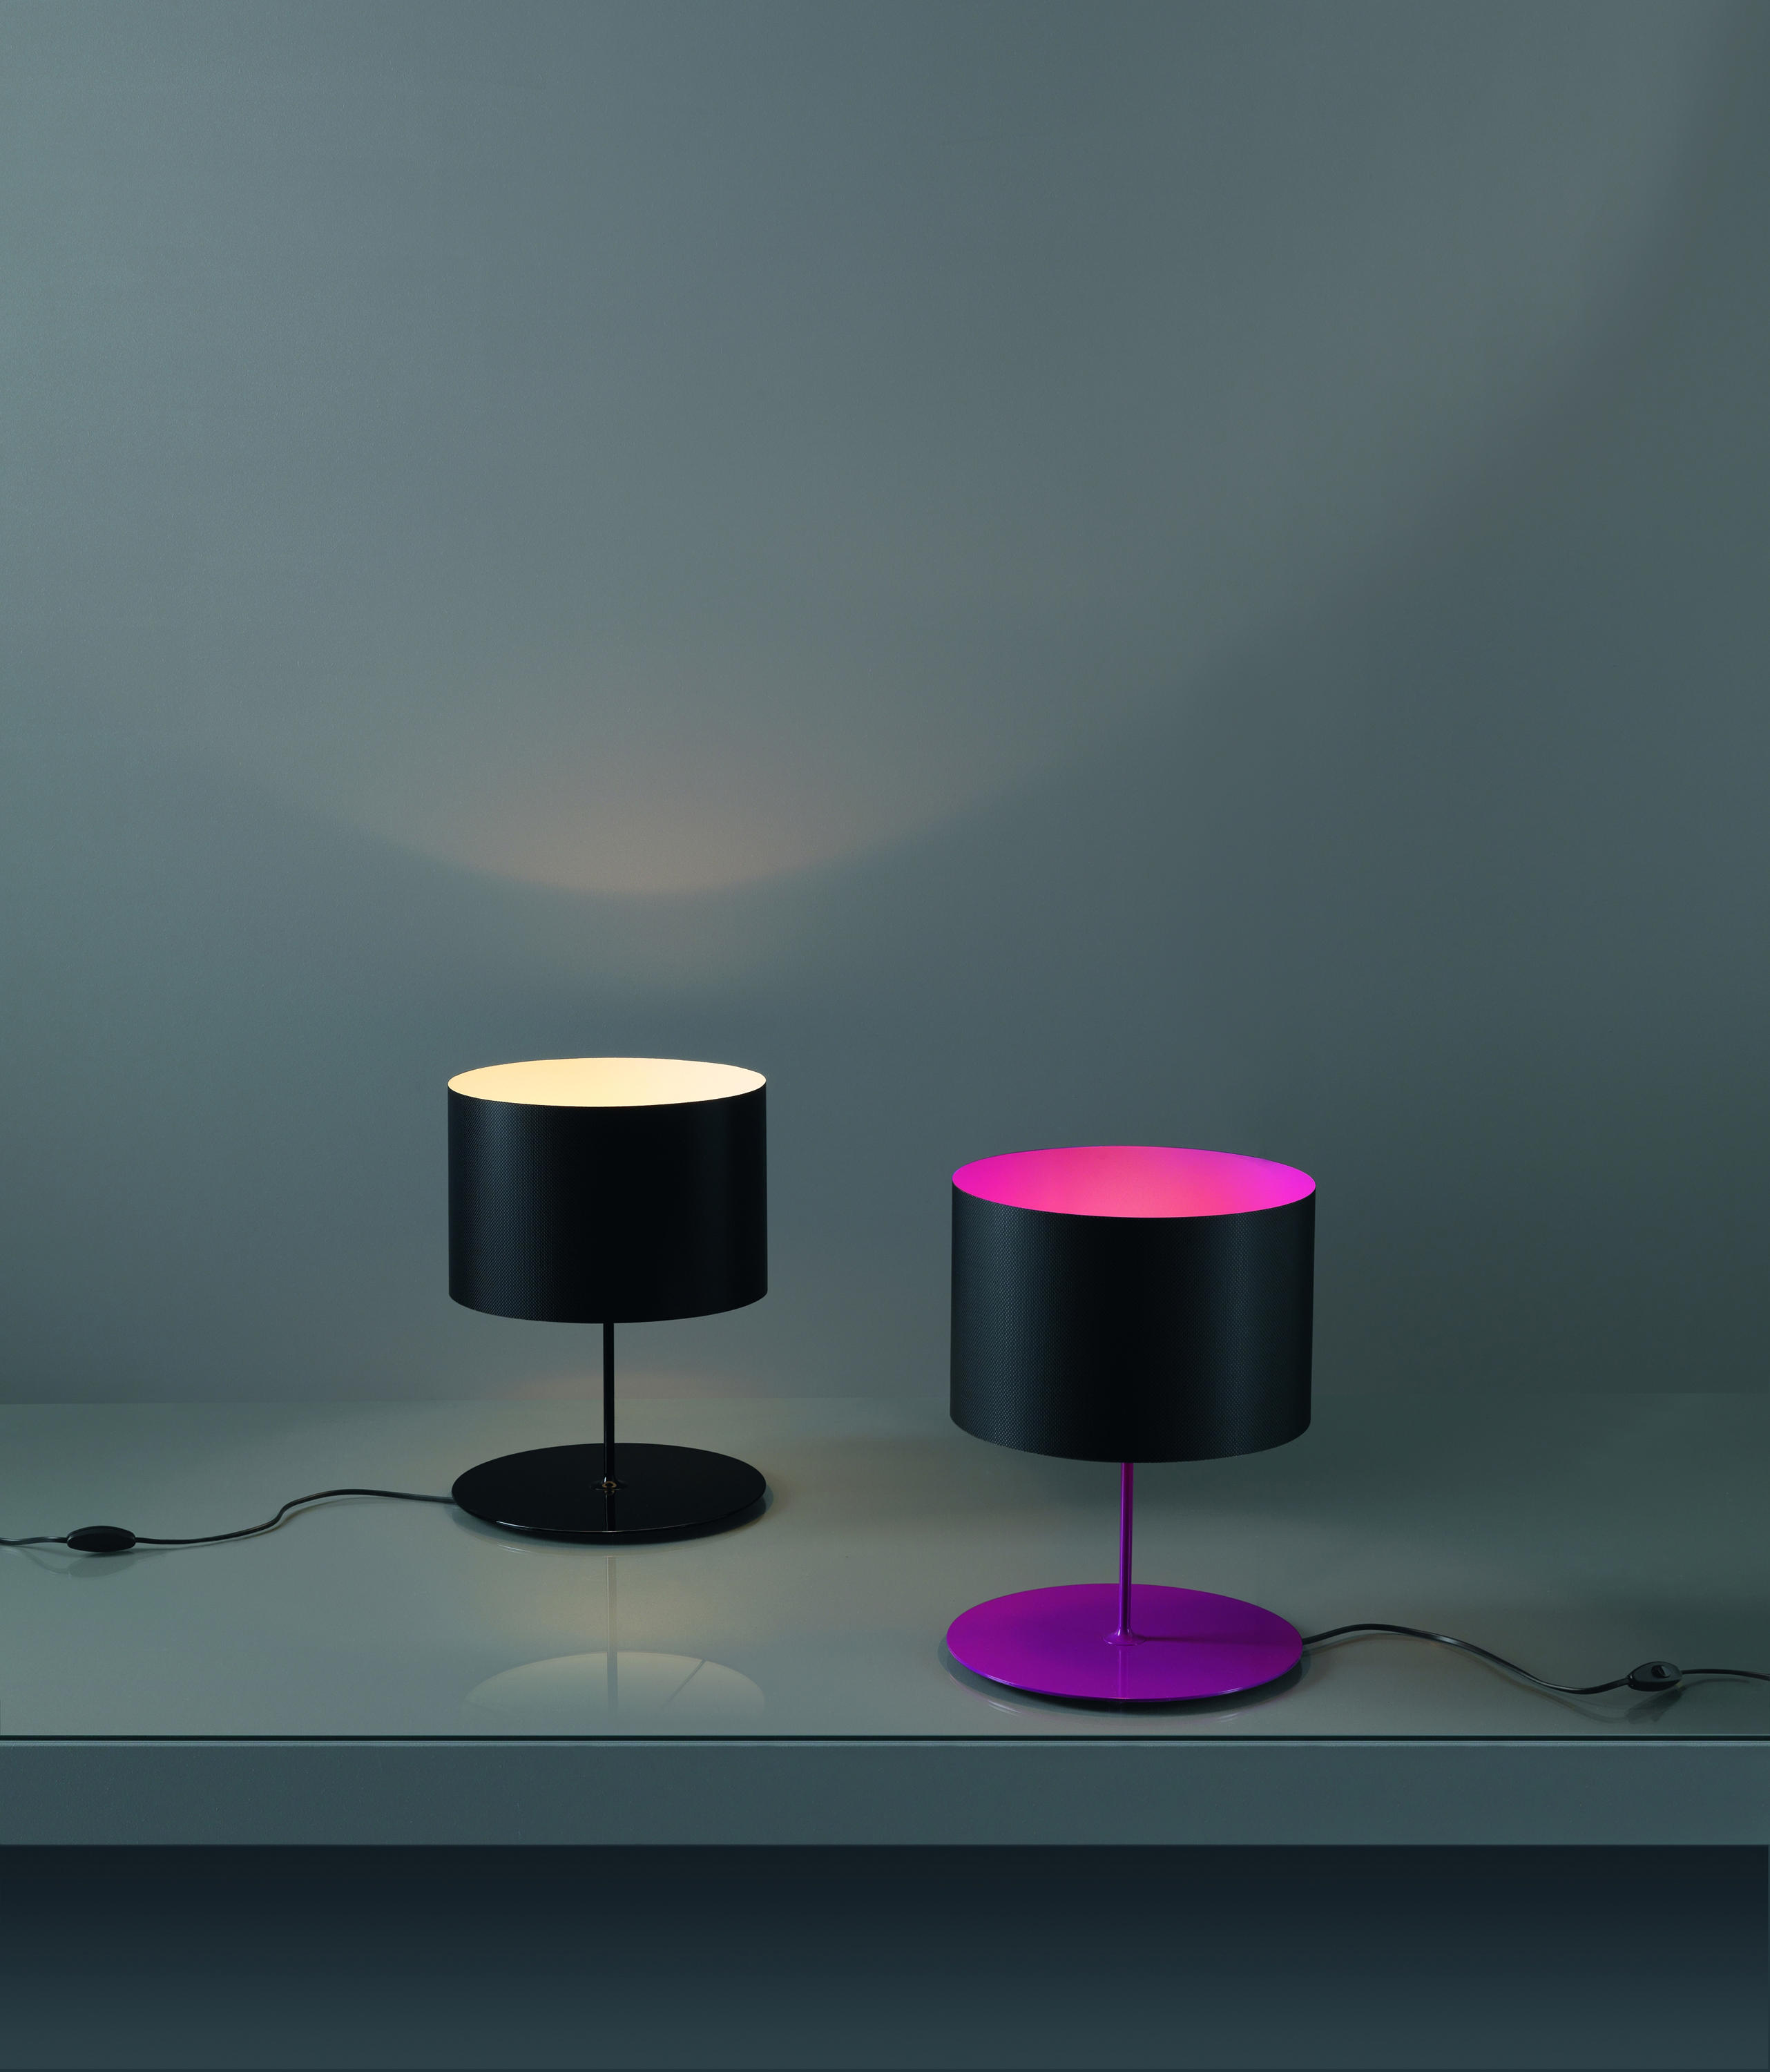 HALF MOON Table Lamp Mini By Karboxx | Table Lights ...